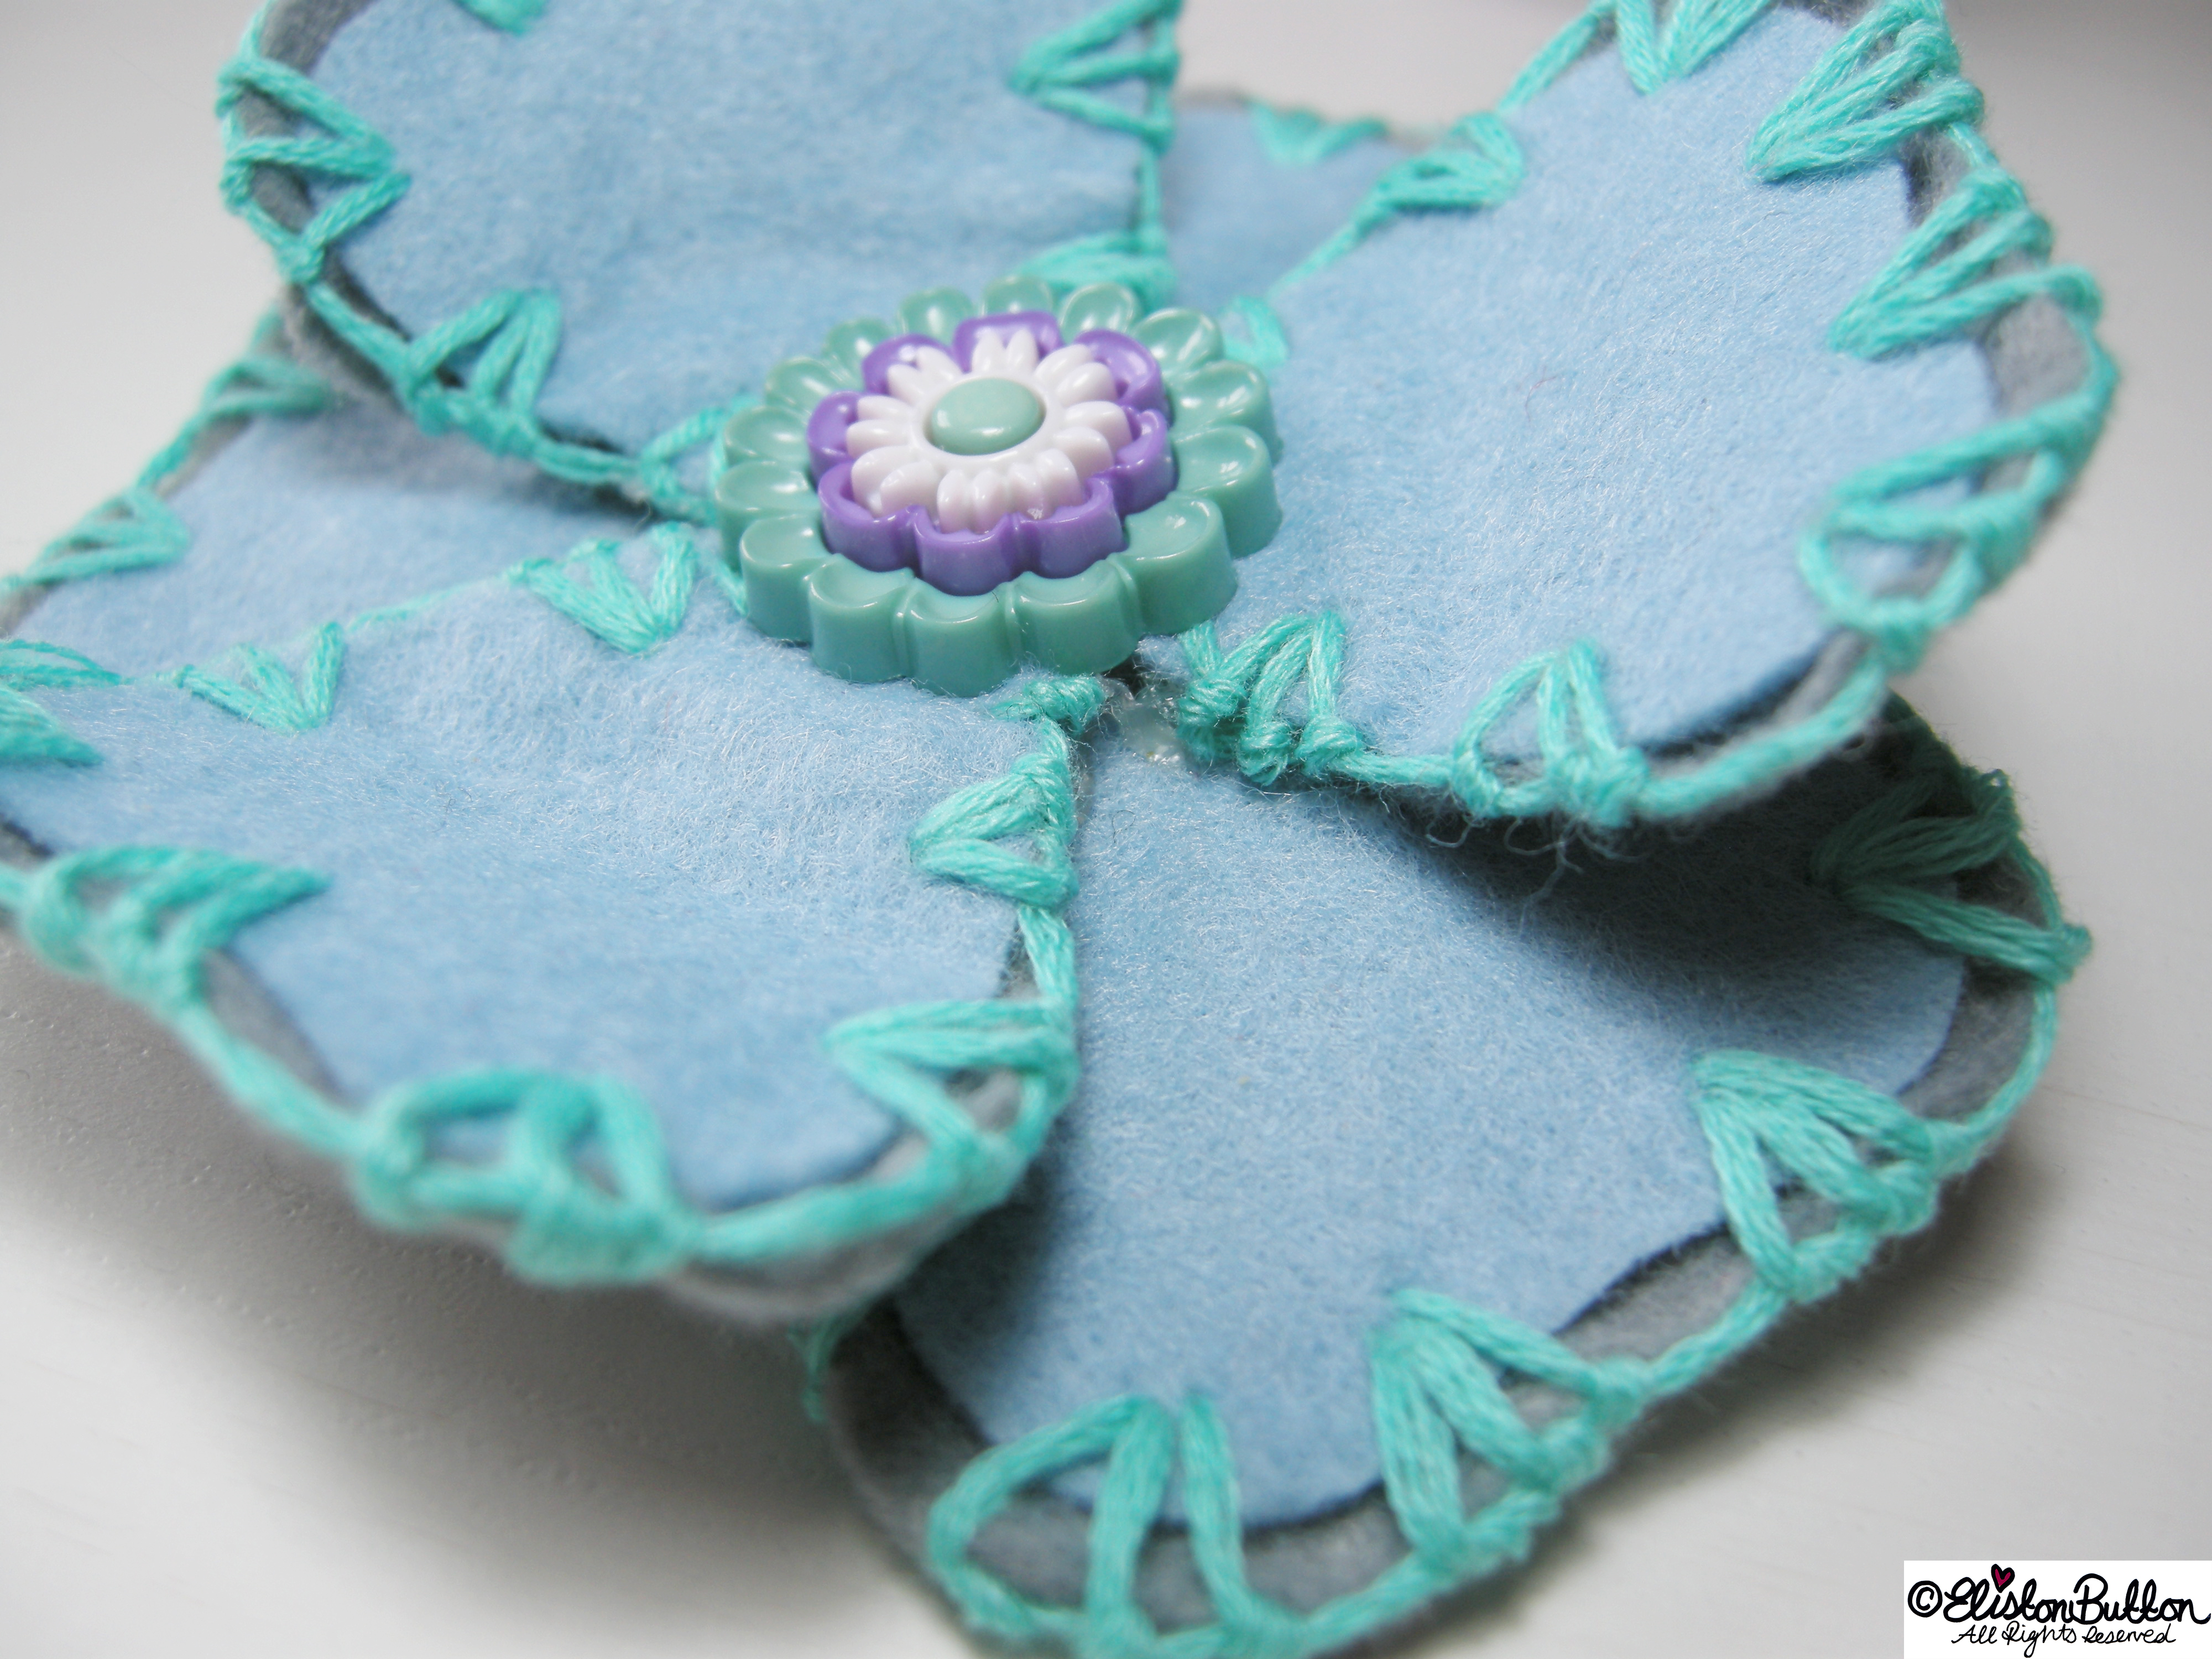 Aquamarine Turquoise, Pastel Blue and Grey Embroidered Felt Flower Brooch - Close Up Detail - 27 Before 27 – Aquamarine at www.elistonbutton.com - Eliston Button - That Crafty Kid – Art, Design, Craft & Adventure.